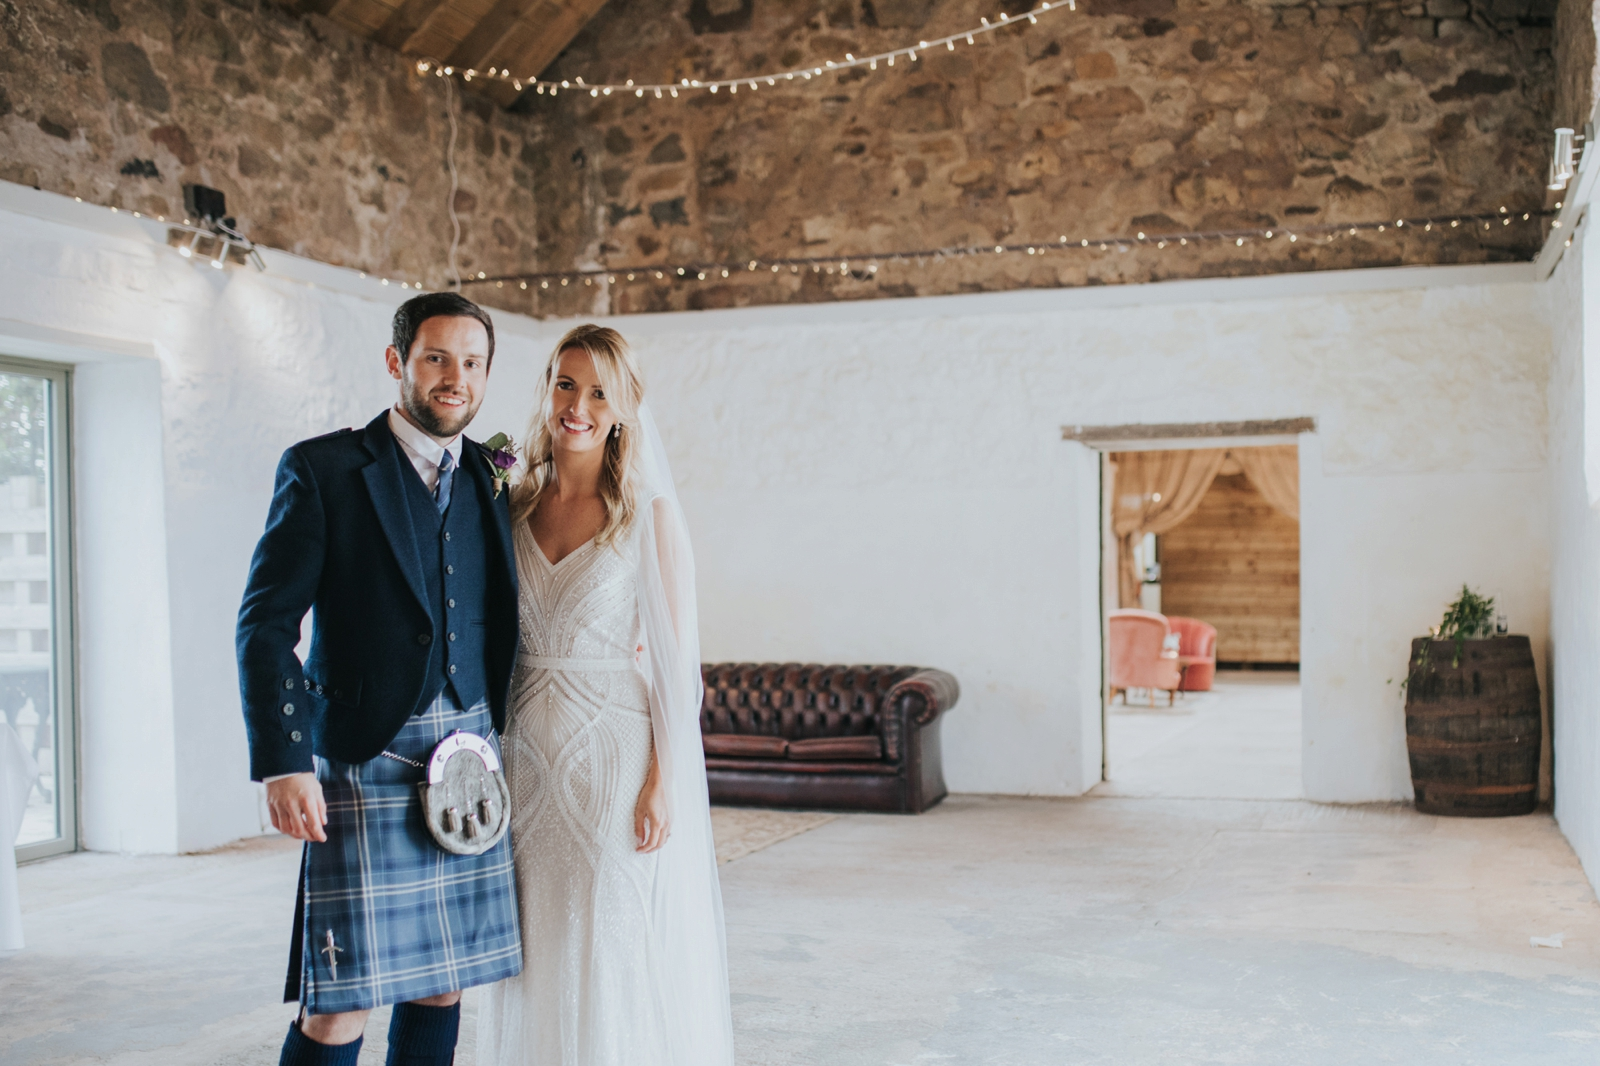 cow-shed-crail-rustic-wedding-gemma-andy-loraine-ross-photographygemma-andy-wedding-0646.jpg